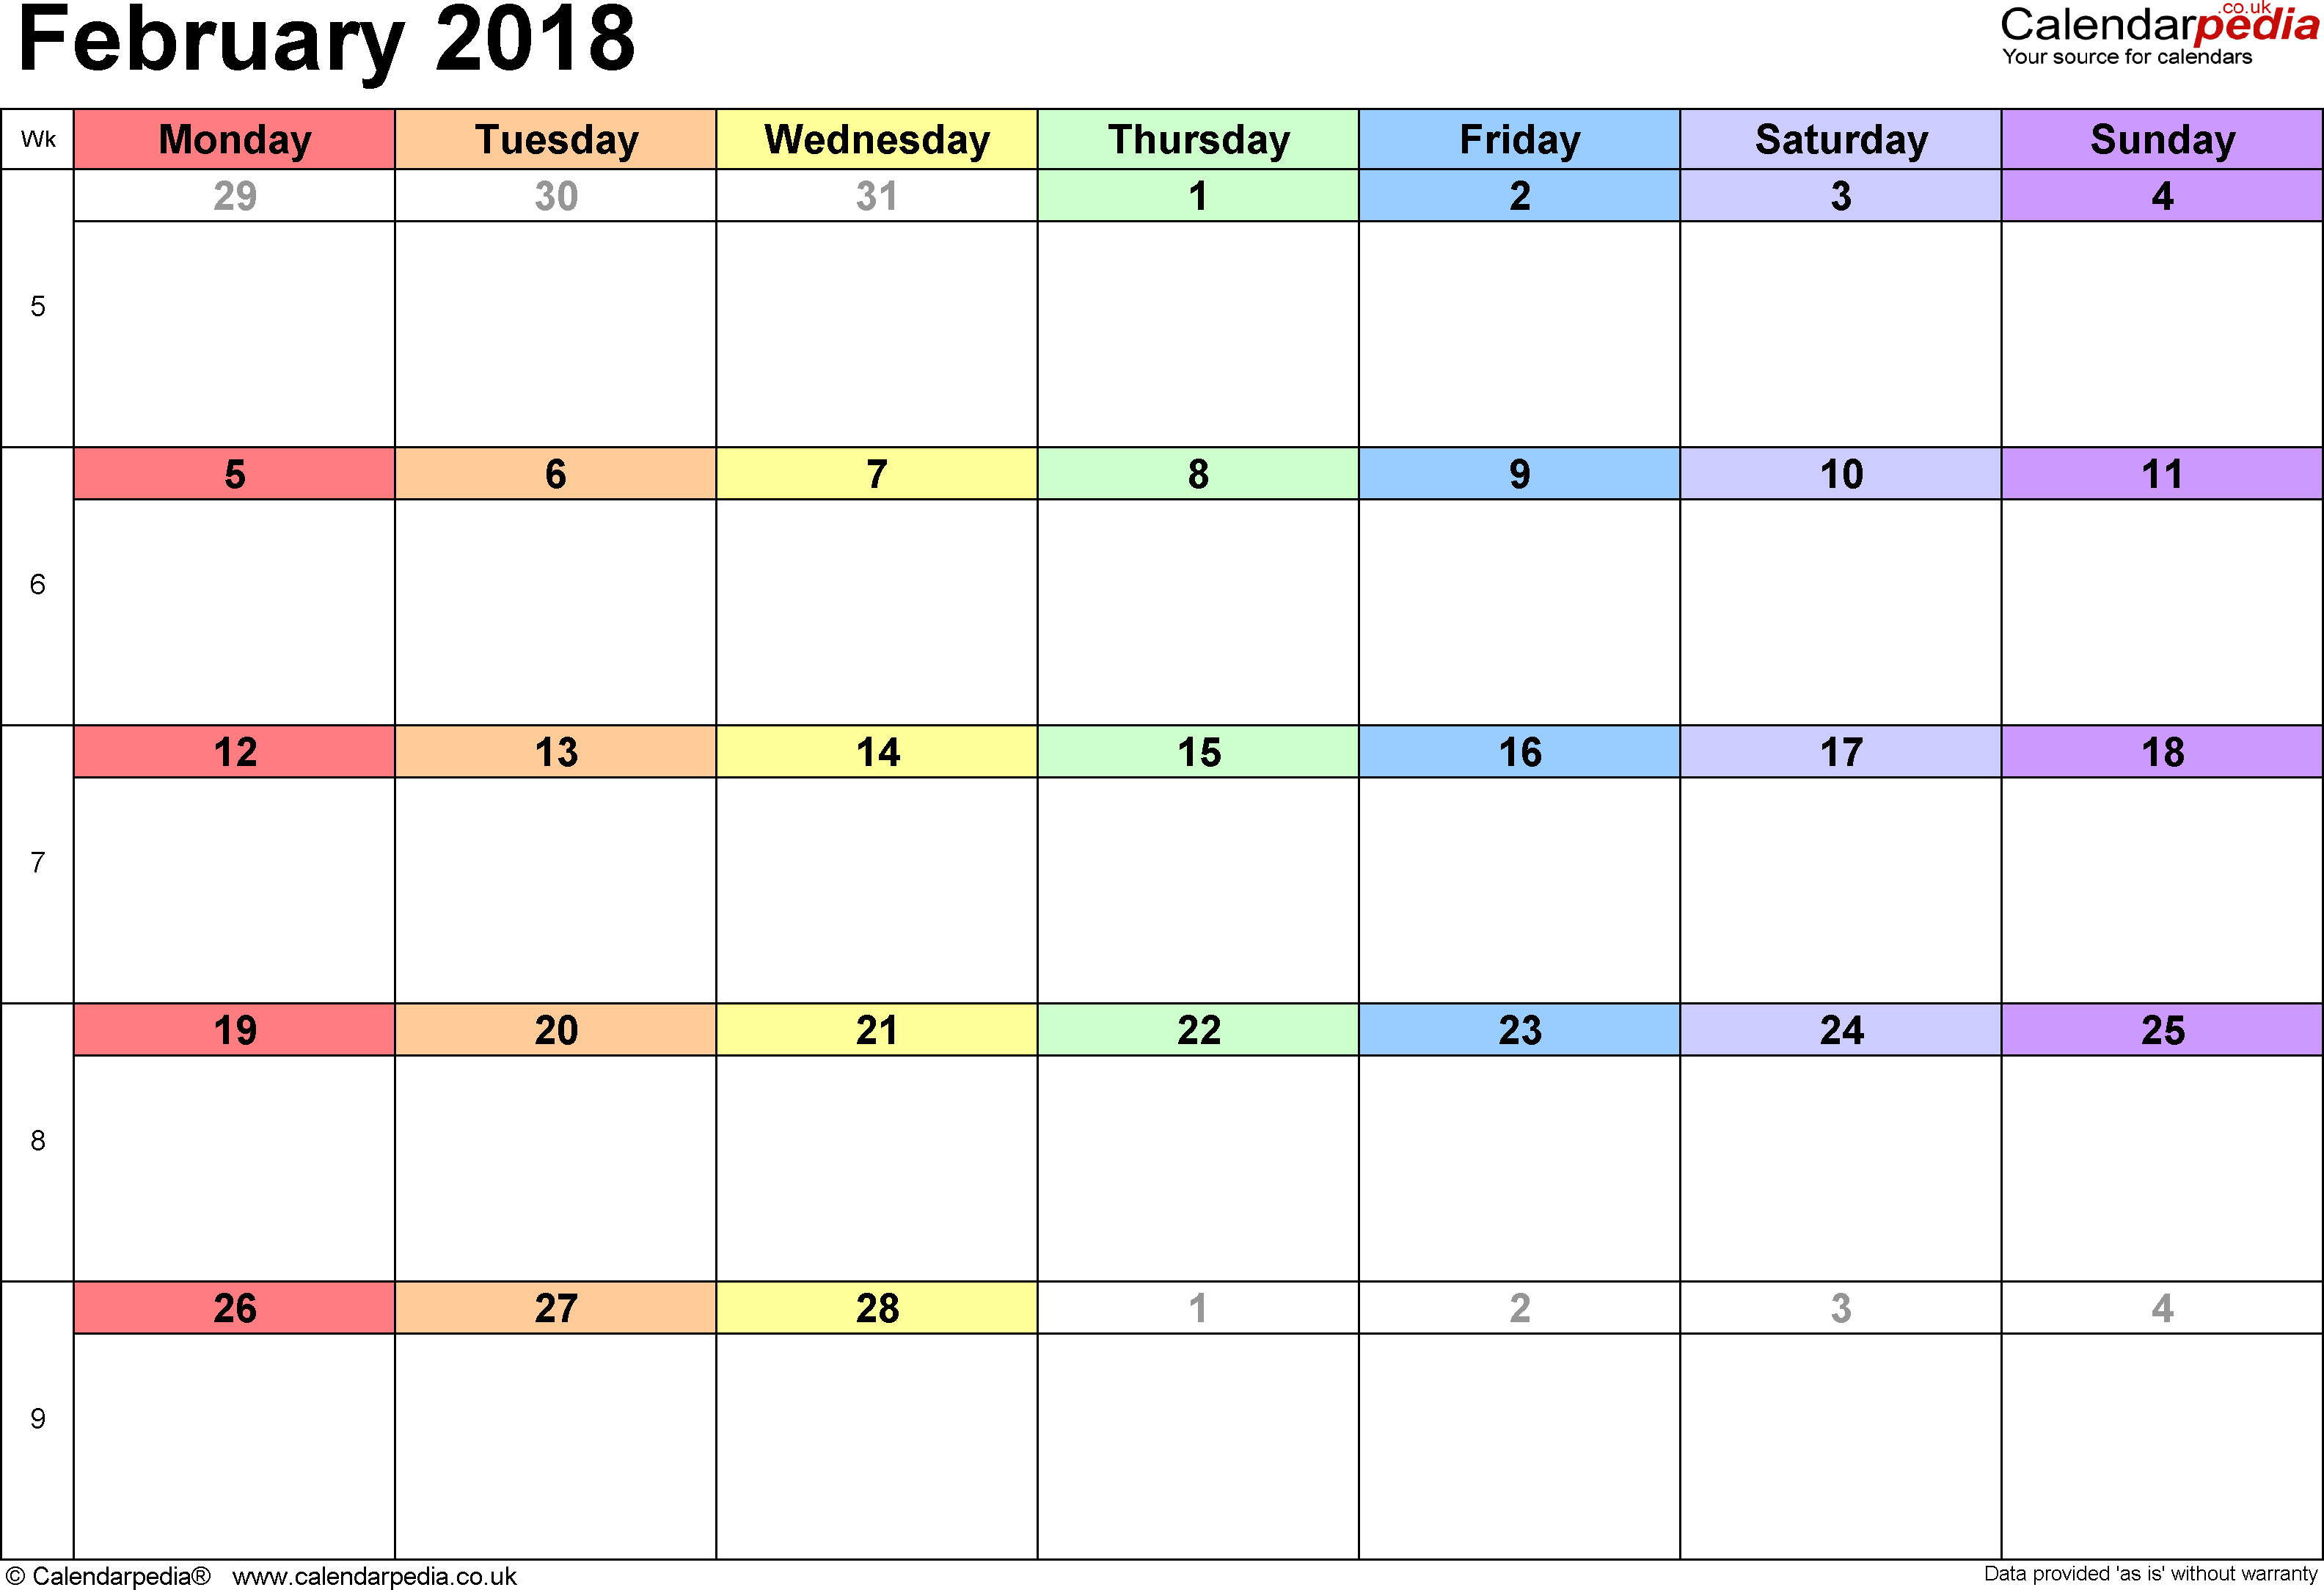 february calendar 2018 template - Okl.mindsprout.co